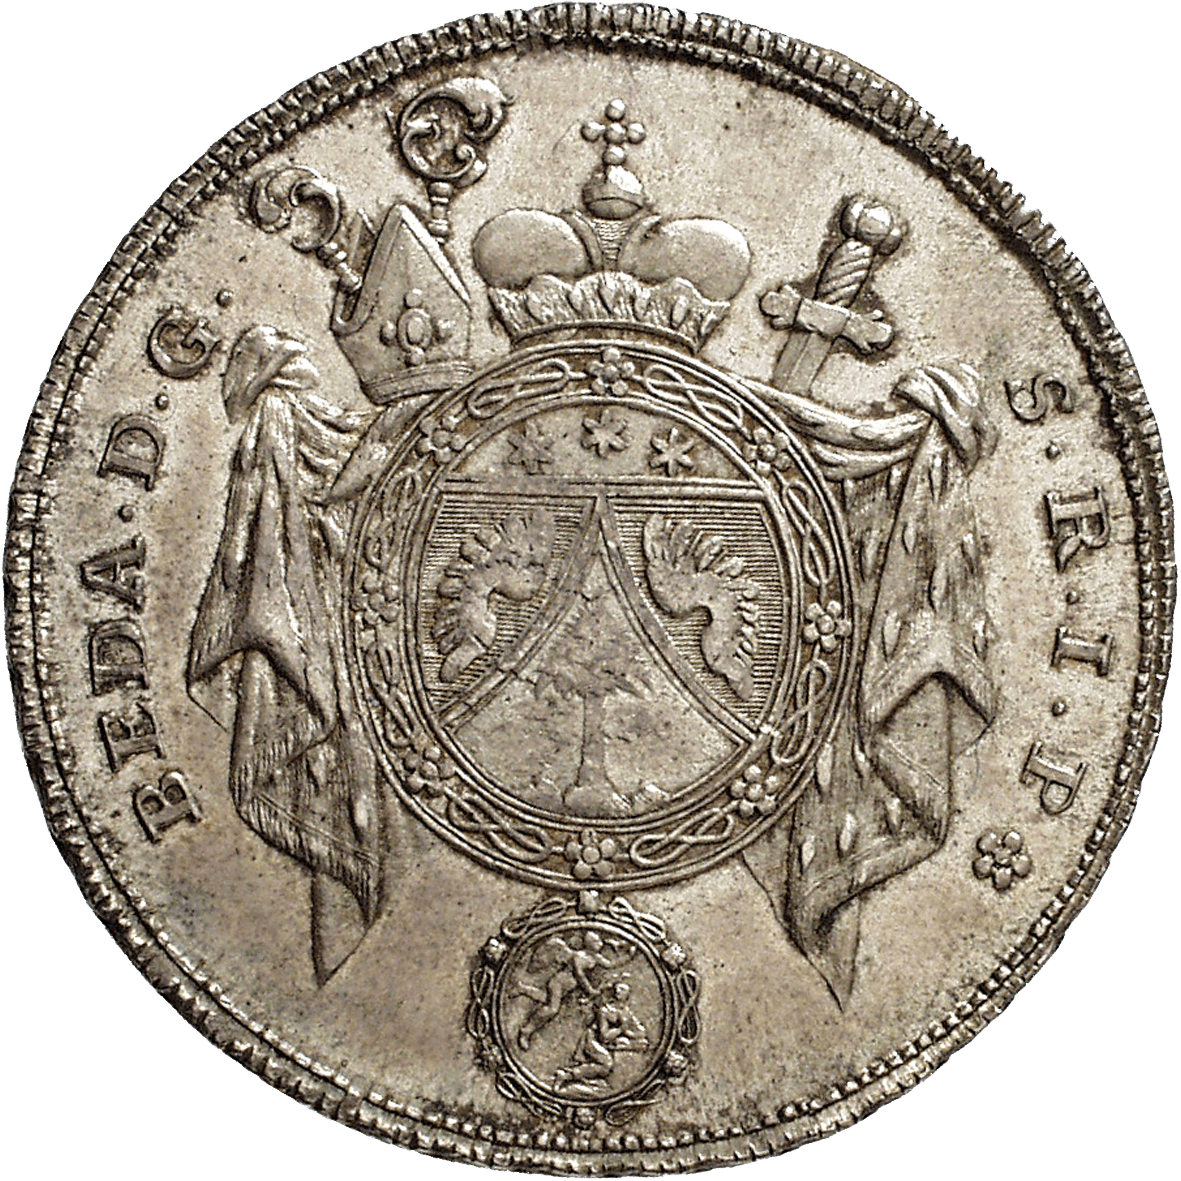 Abbey of St Gall, Beda Angehrn of Hagenwil, Convention Taler 1780 (obverse)